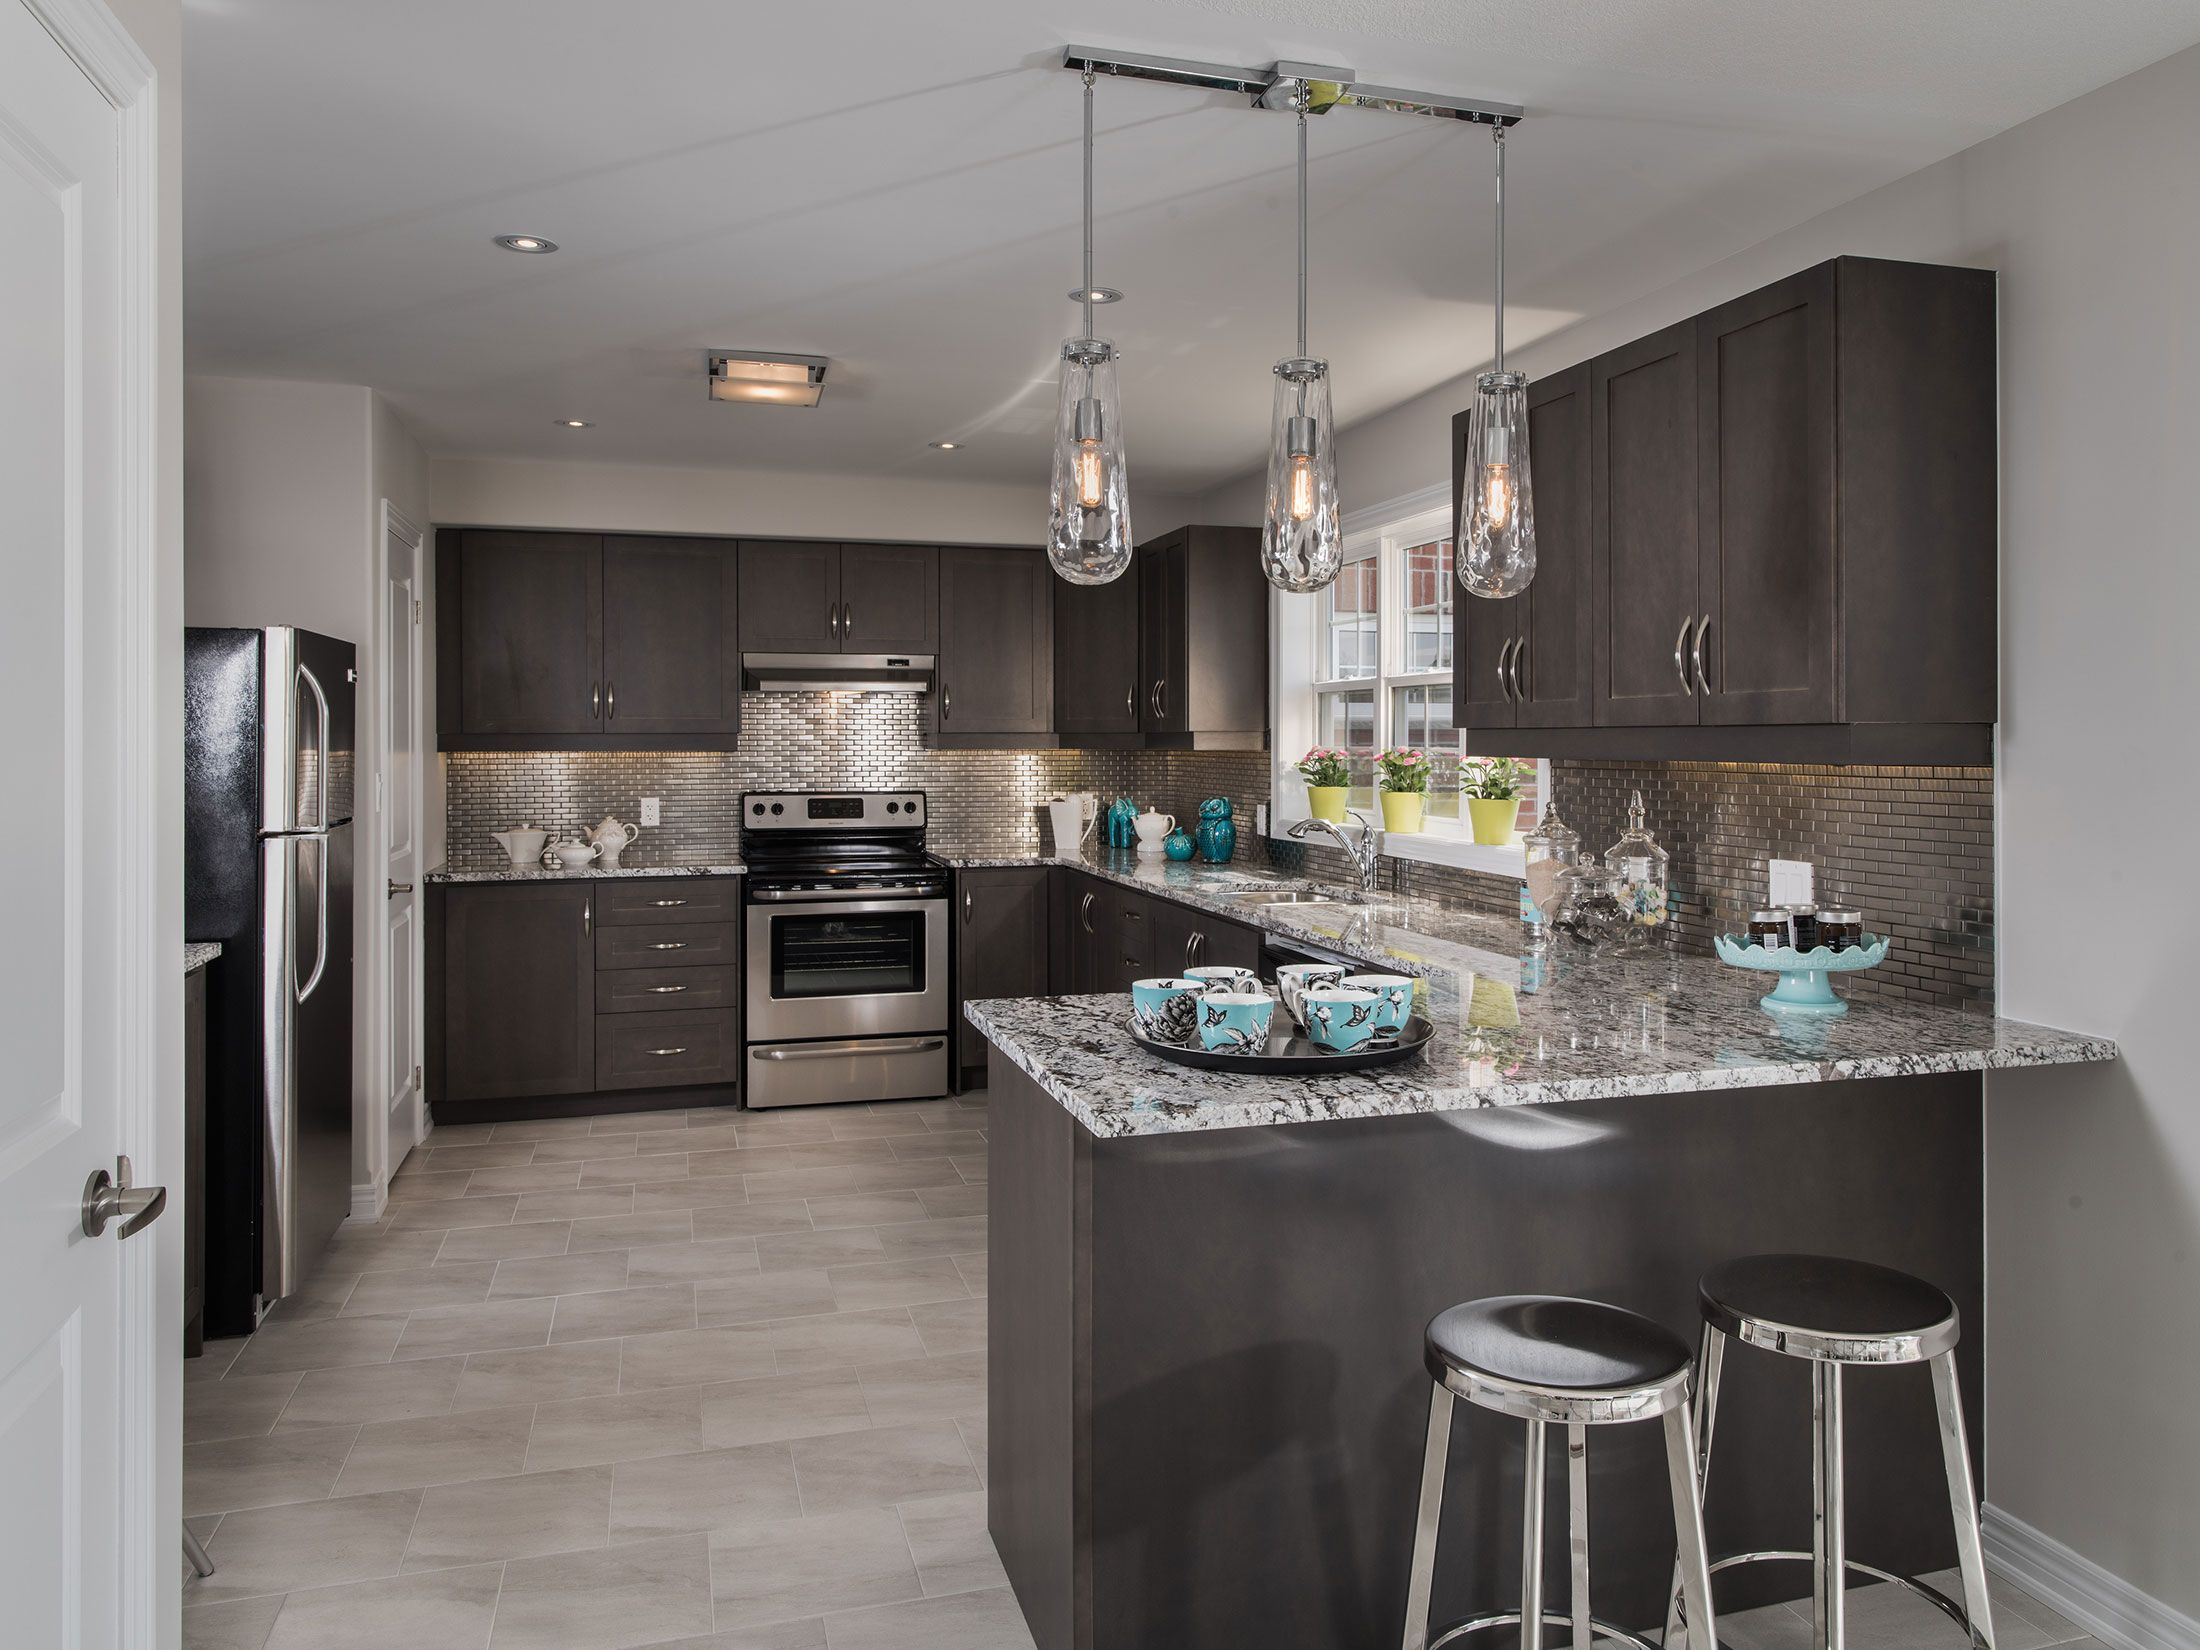 Luxury Has Never Been So Convenient And Affordable With Mason New Homes In Barrie Kawarthas Lindsay And Across Ontario En Mason Homes Bungalow Design Home